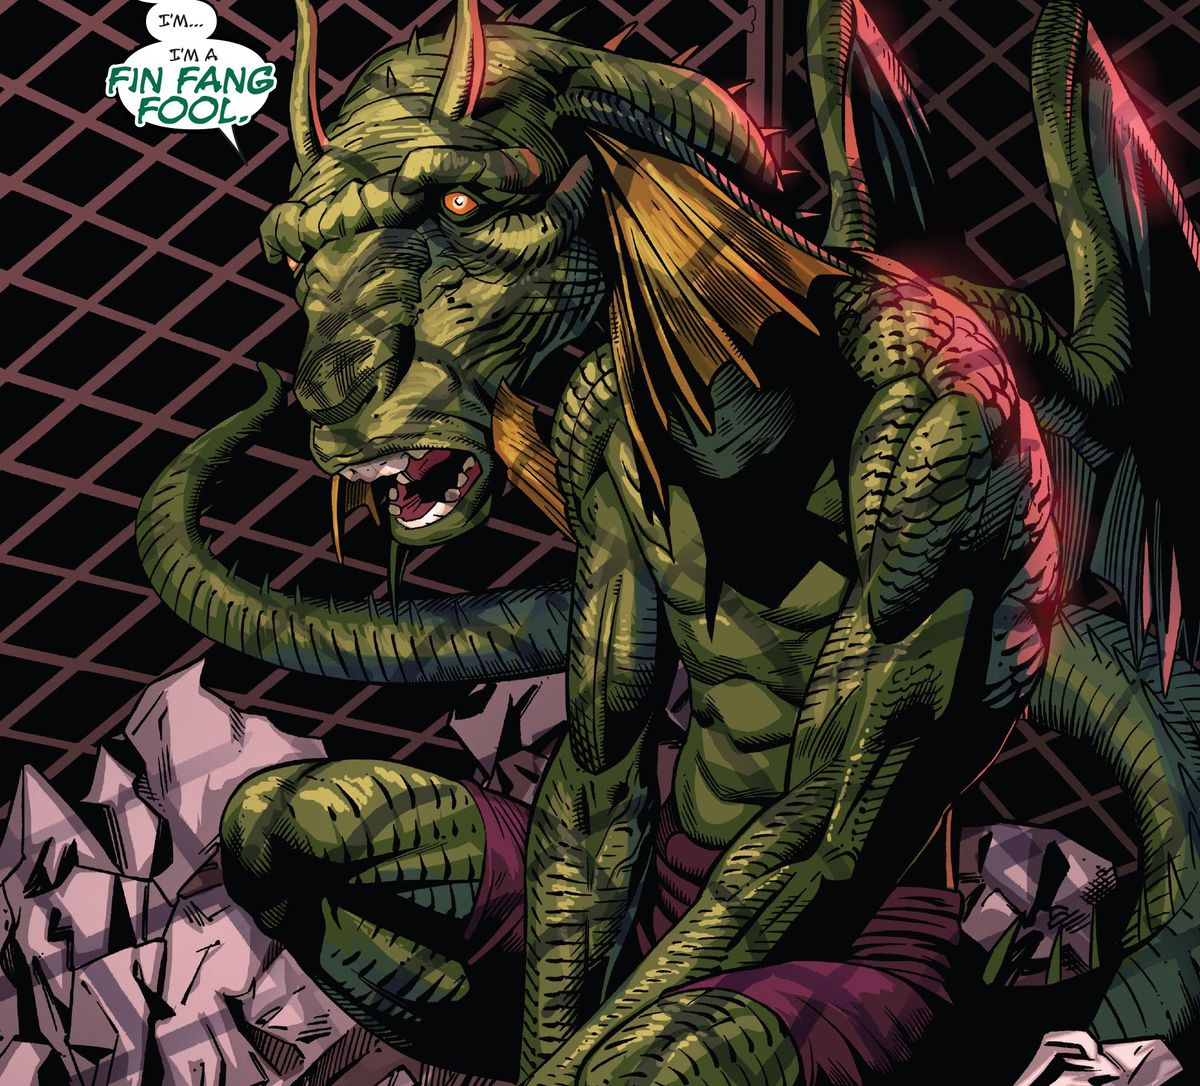 """Fin Fing Foom, somehow reduced to about the size of a housecat, sits in a wastepaper basket and bemoans, """"I'm a Fin Fang Fool,"""" in Black Panther and the Agents of Wakanda, Marvel Comics (2020)."""